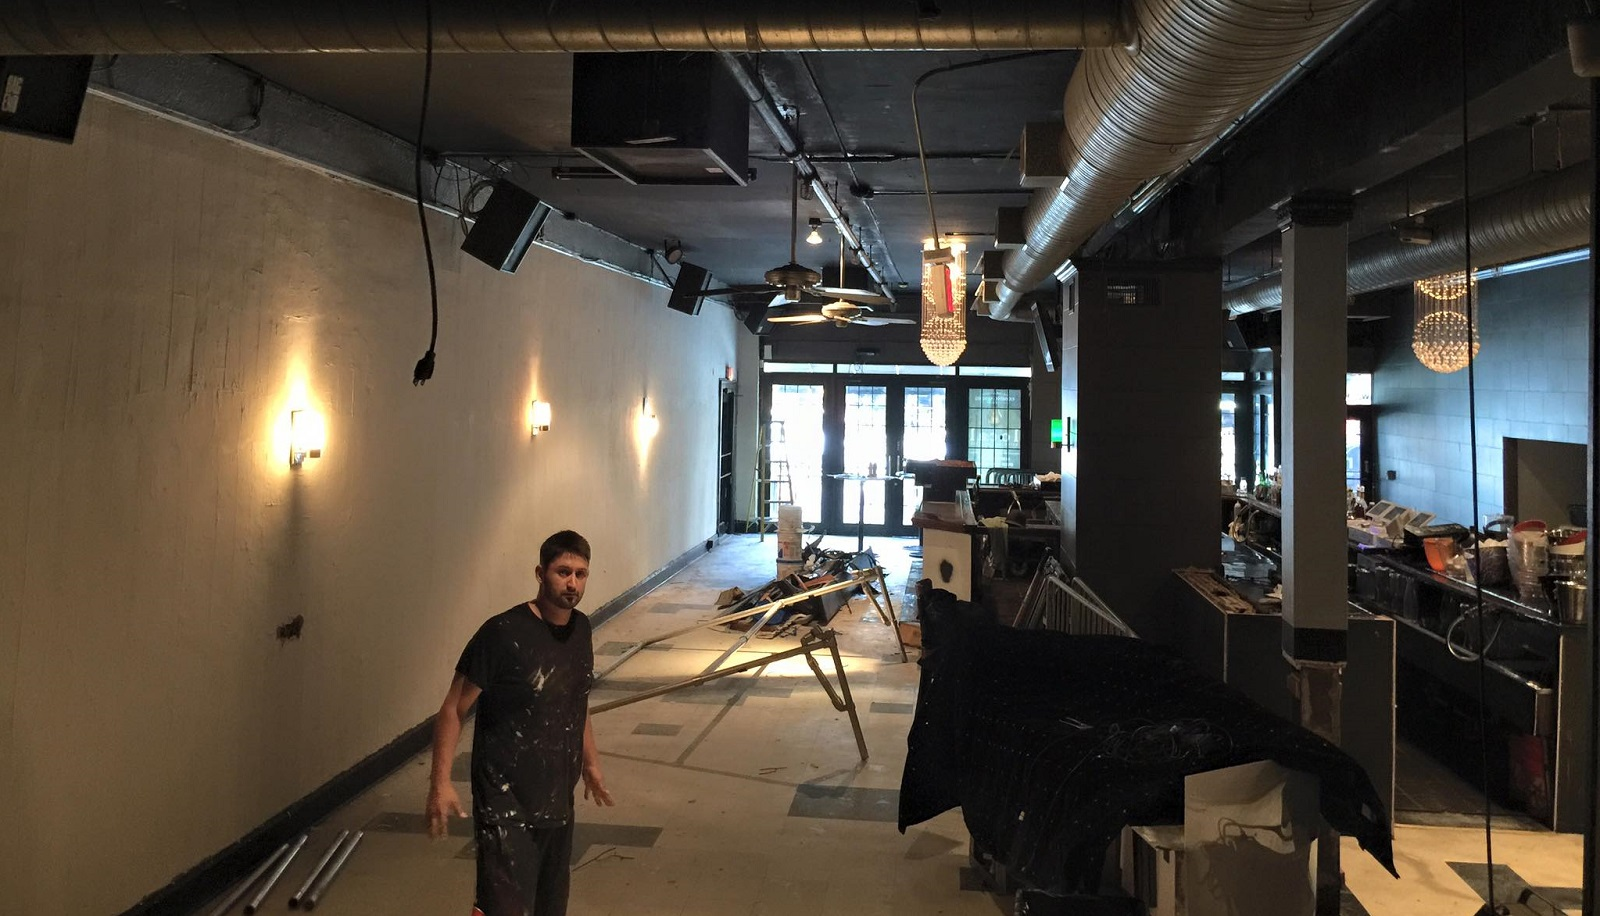 Renovation is underway at Noir, which will become Local Kitchen & Beer Bar. (via Justin Noir's Facebook page)